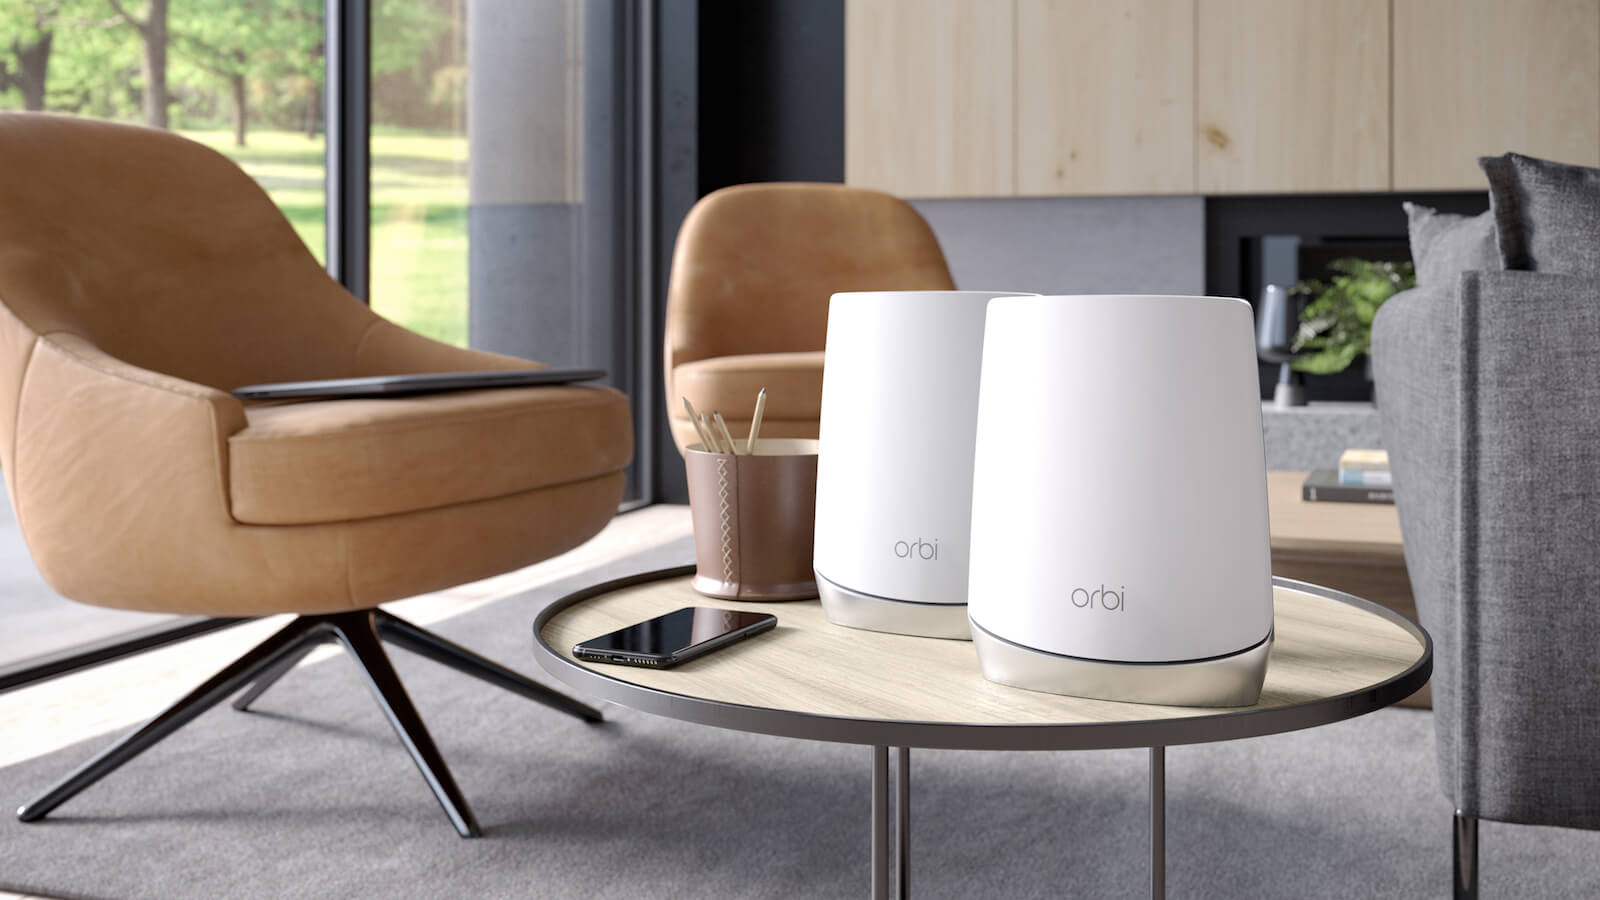 NETGEAR Orbi AX4200 Wi-Fi 6 System provides fast internet speeds for your devices